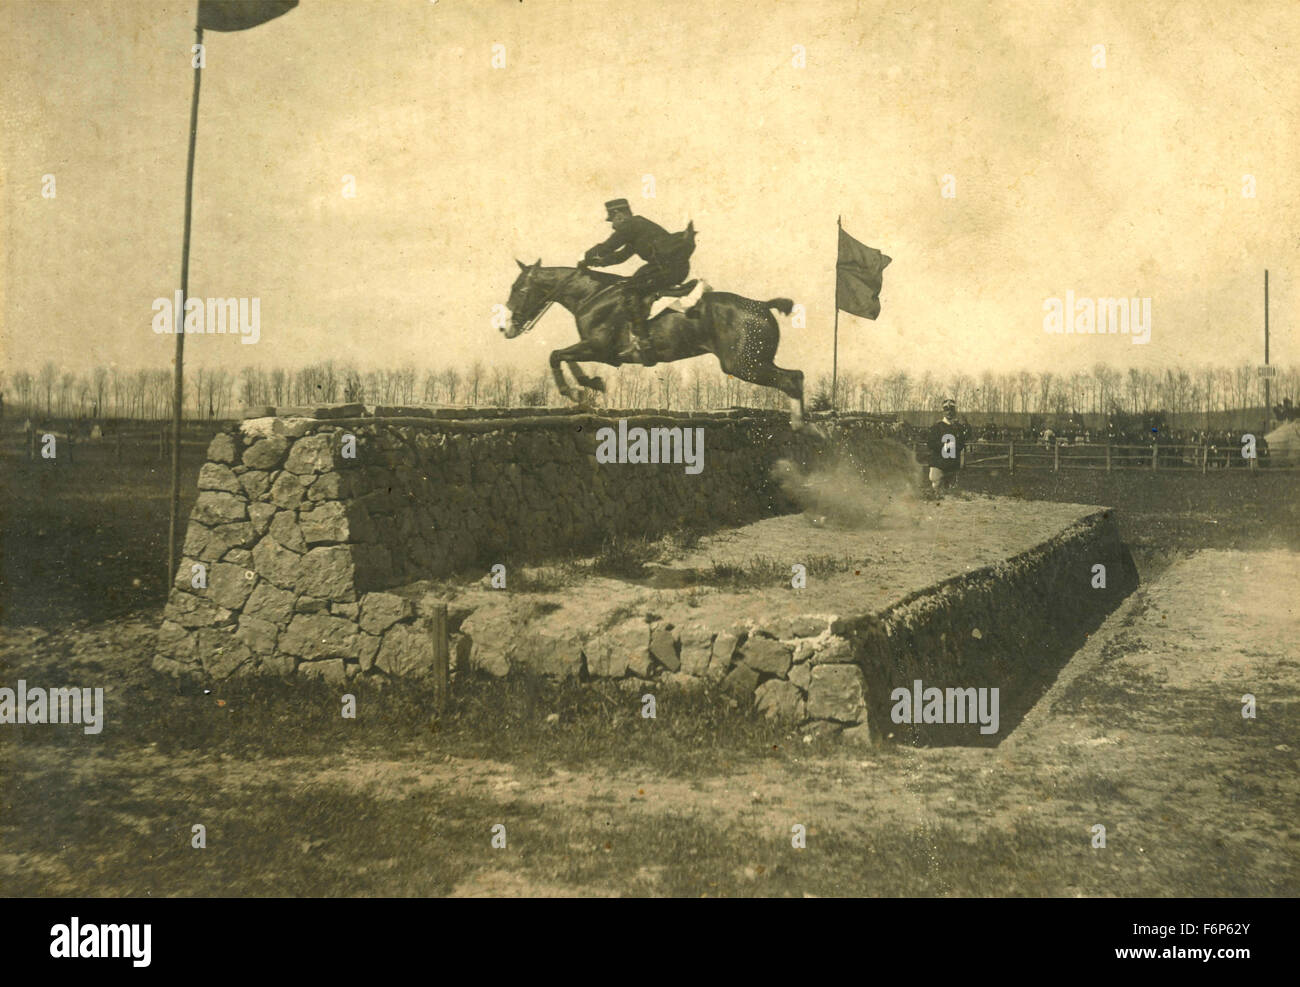 Cavalry officer to jump, Italy - Stock Image